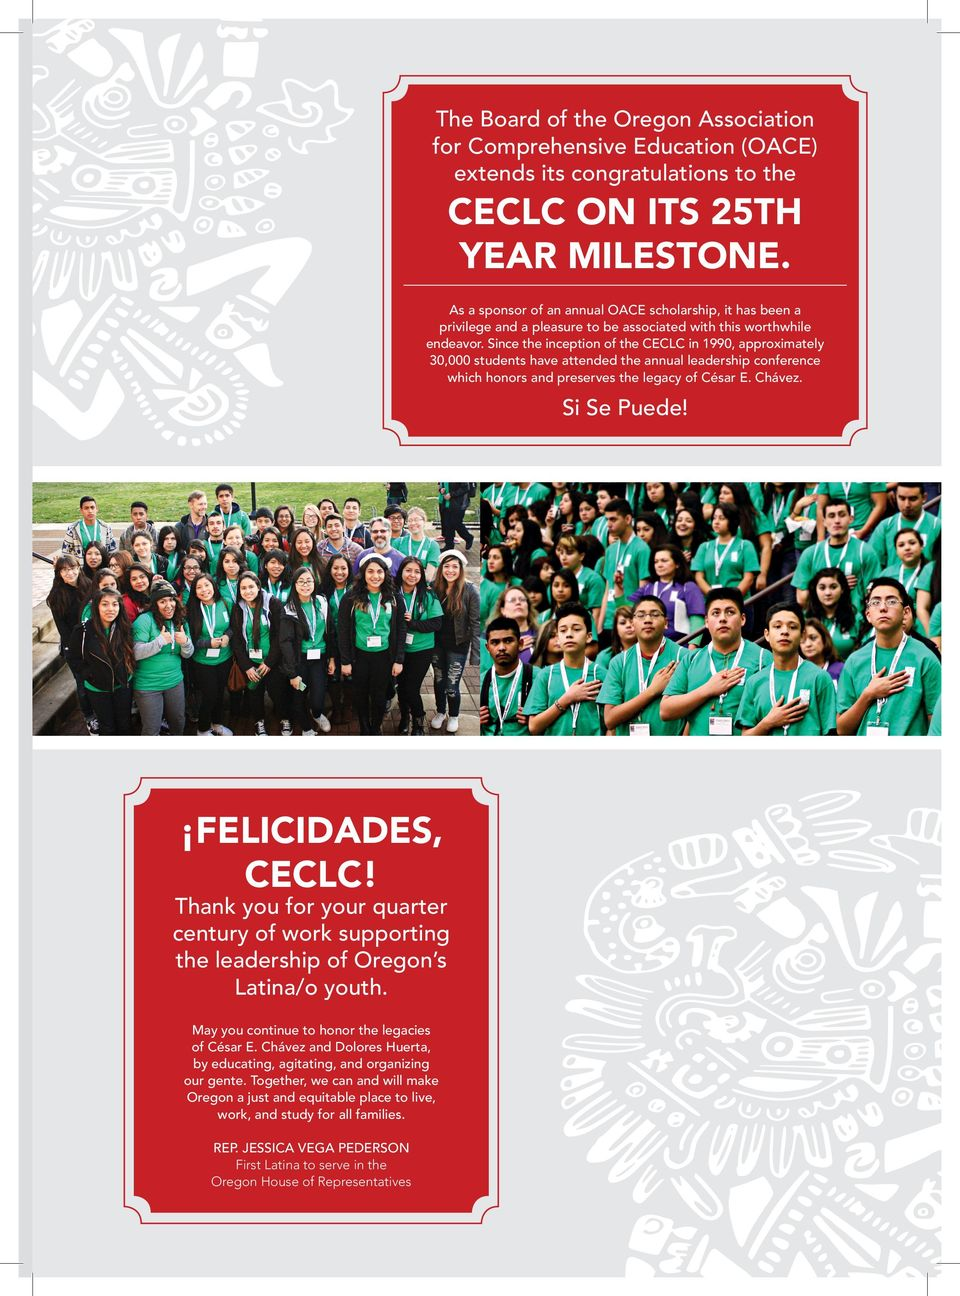 Since the inception of the CECLC in 1990, approximately 30,000 students have attended the annual leadership conference which honors and preserves the legacy of César E. Chávez. Si Se Puede!